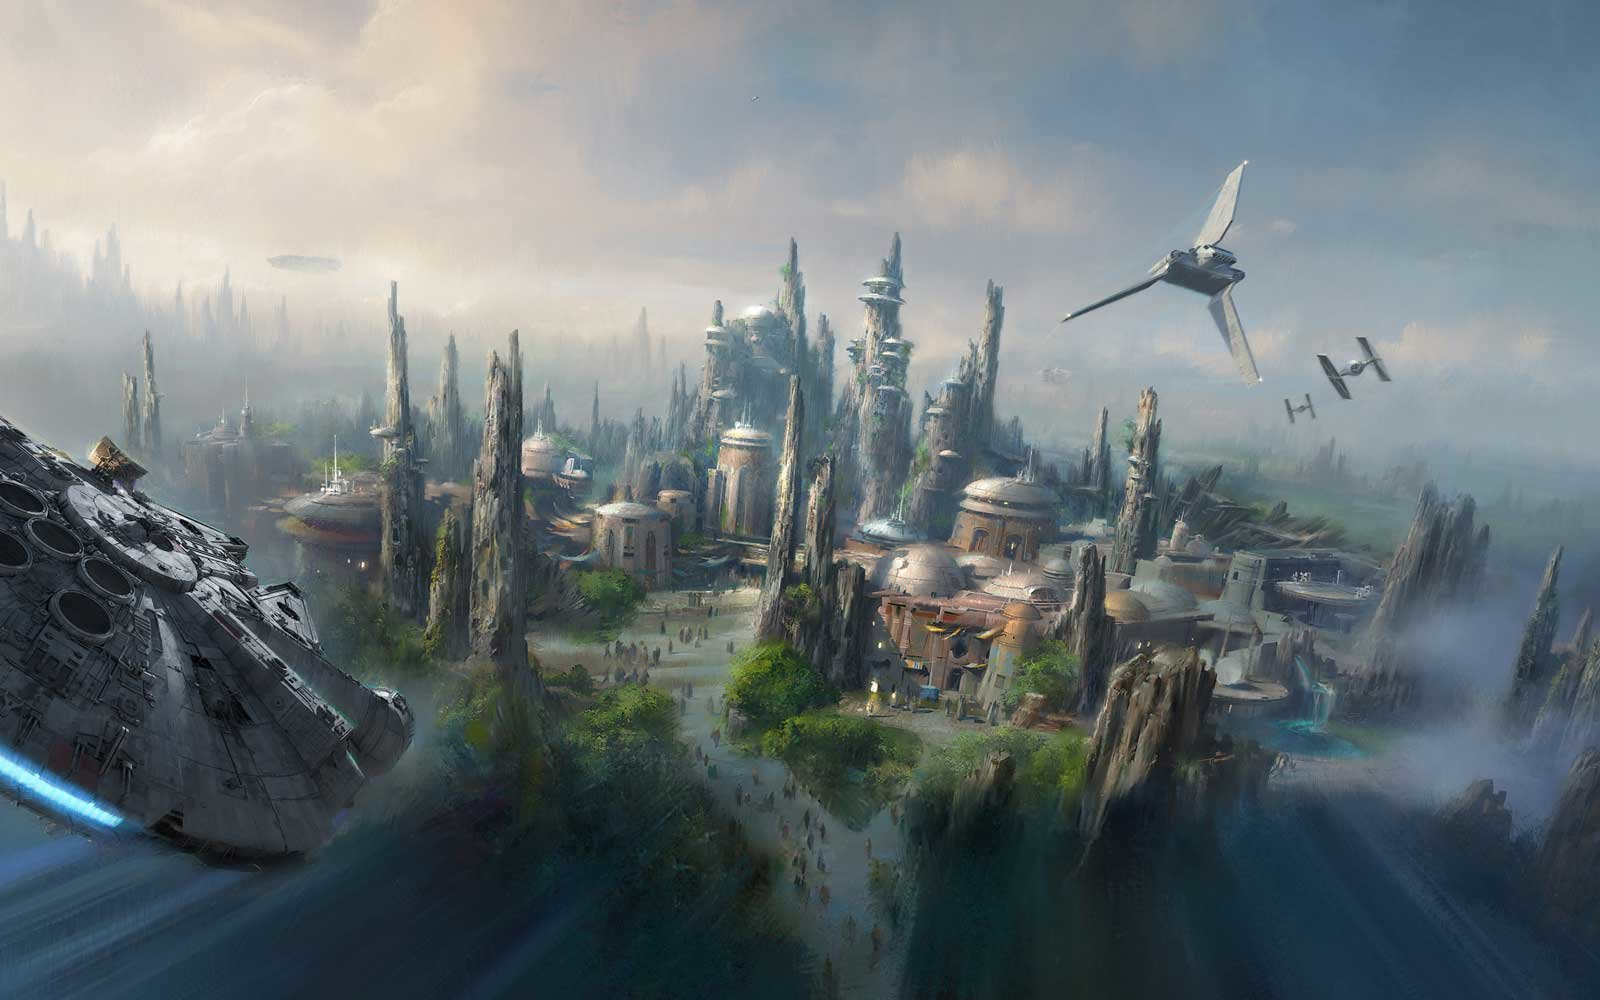 Star Wars Land - Artist Concept